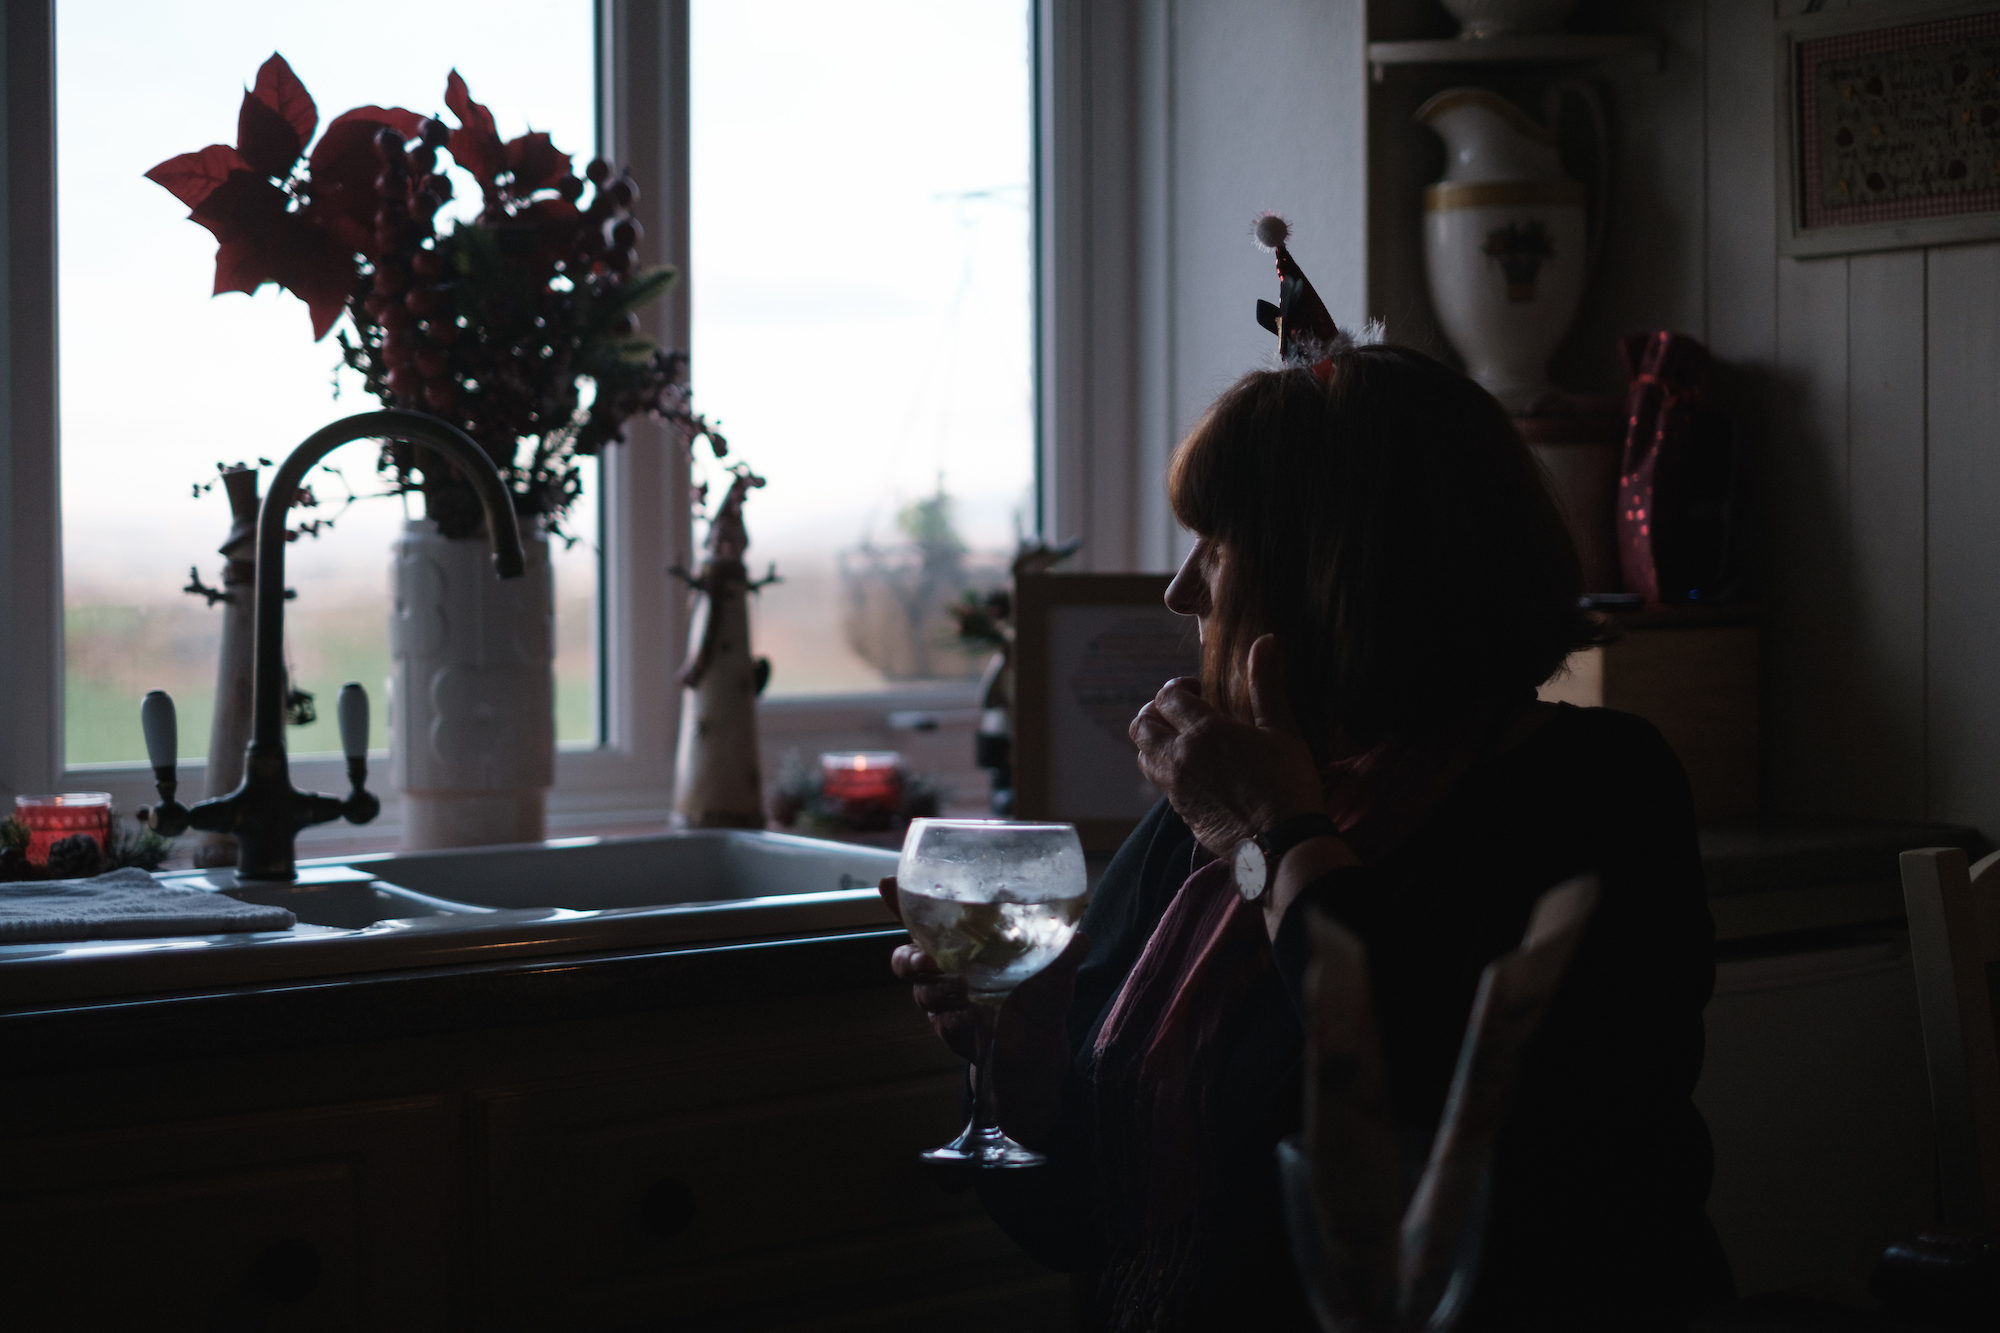 Christmas 2020 - A Wedding Proposal on the gower Peninsula by Ben Holbrook from DriftwoodJournals.com-5